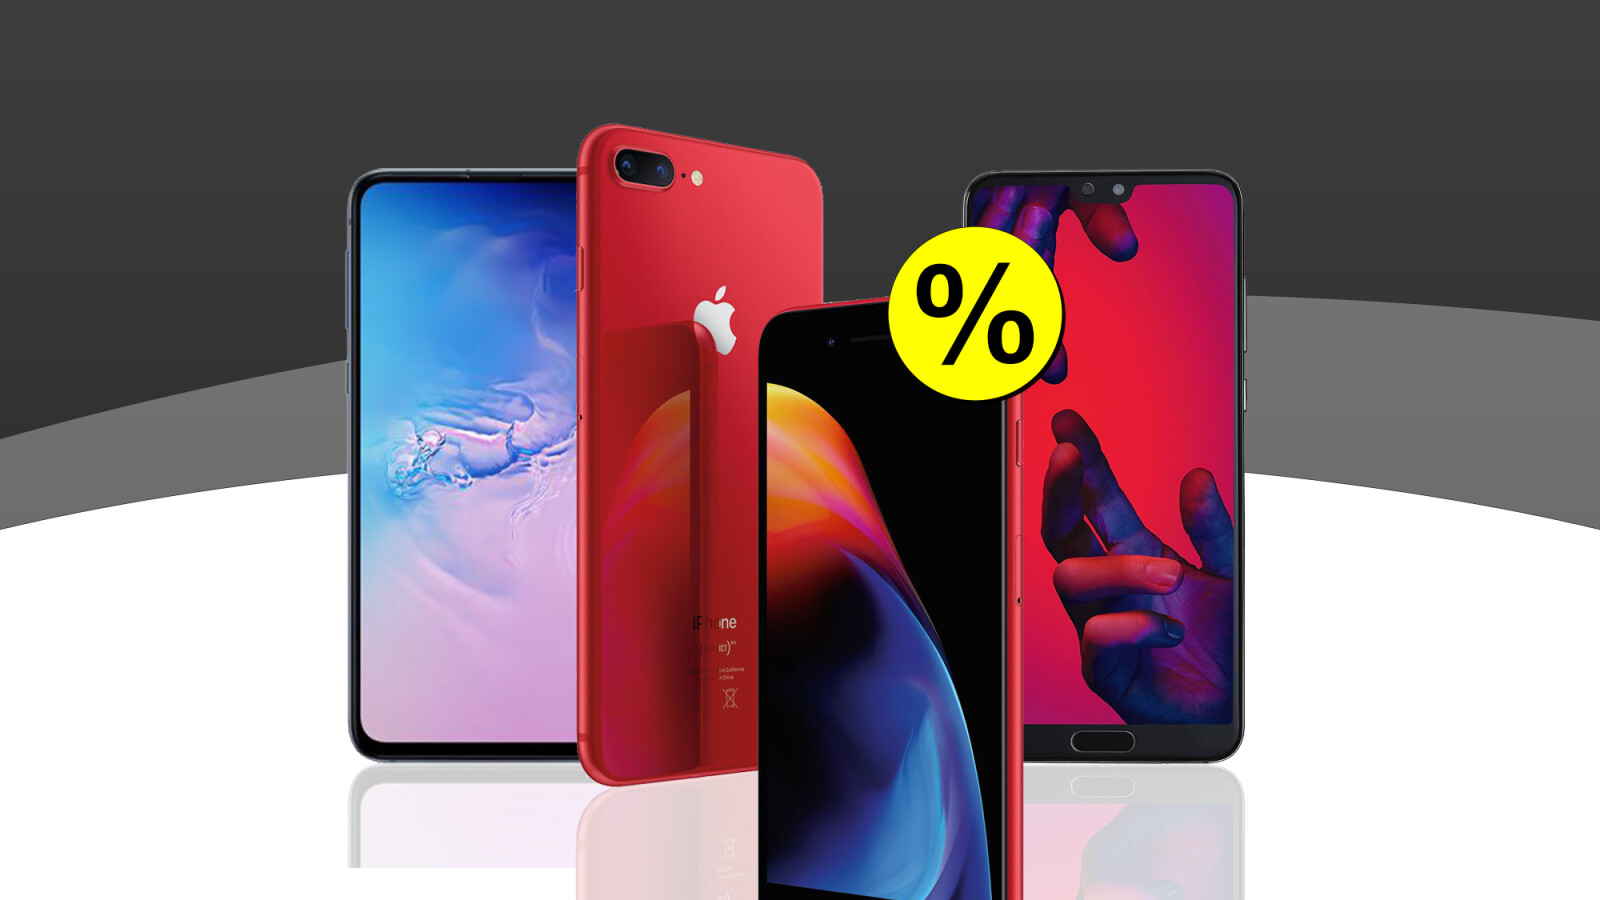 Smartphone Deals These Phones Are Currently Particularly Cheap Igamesnews